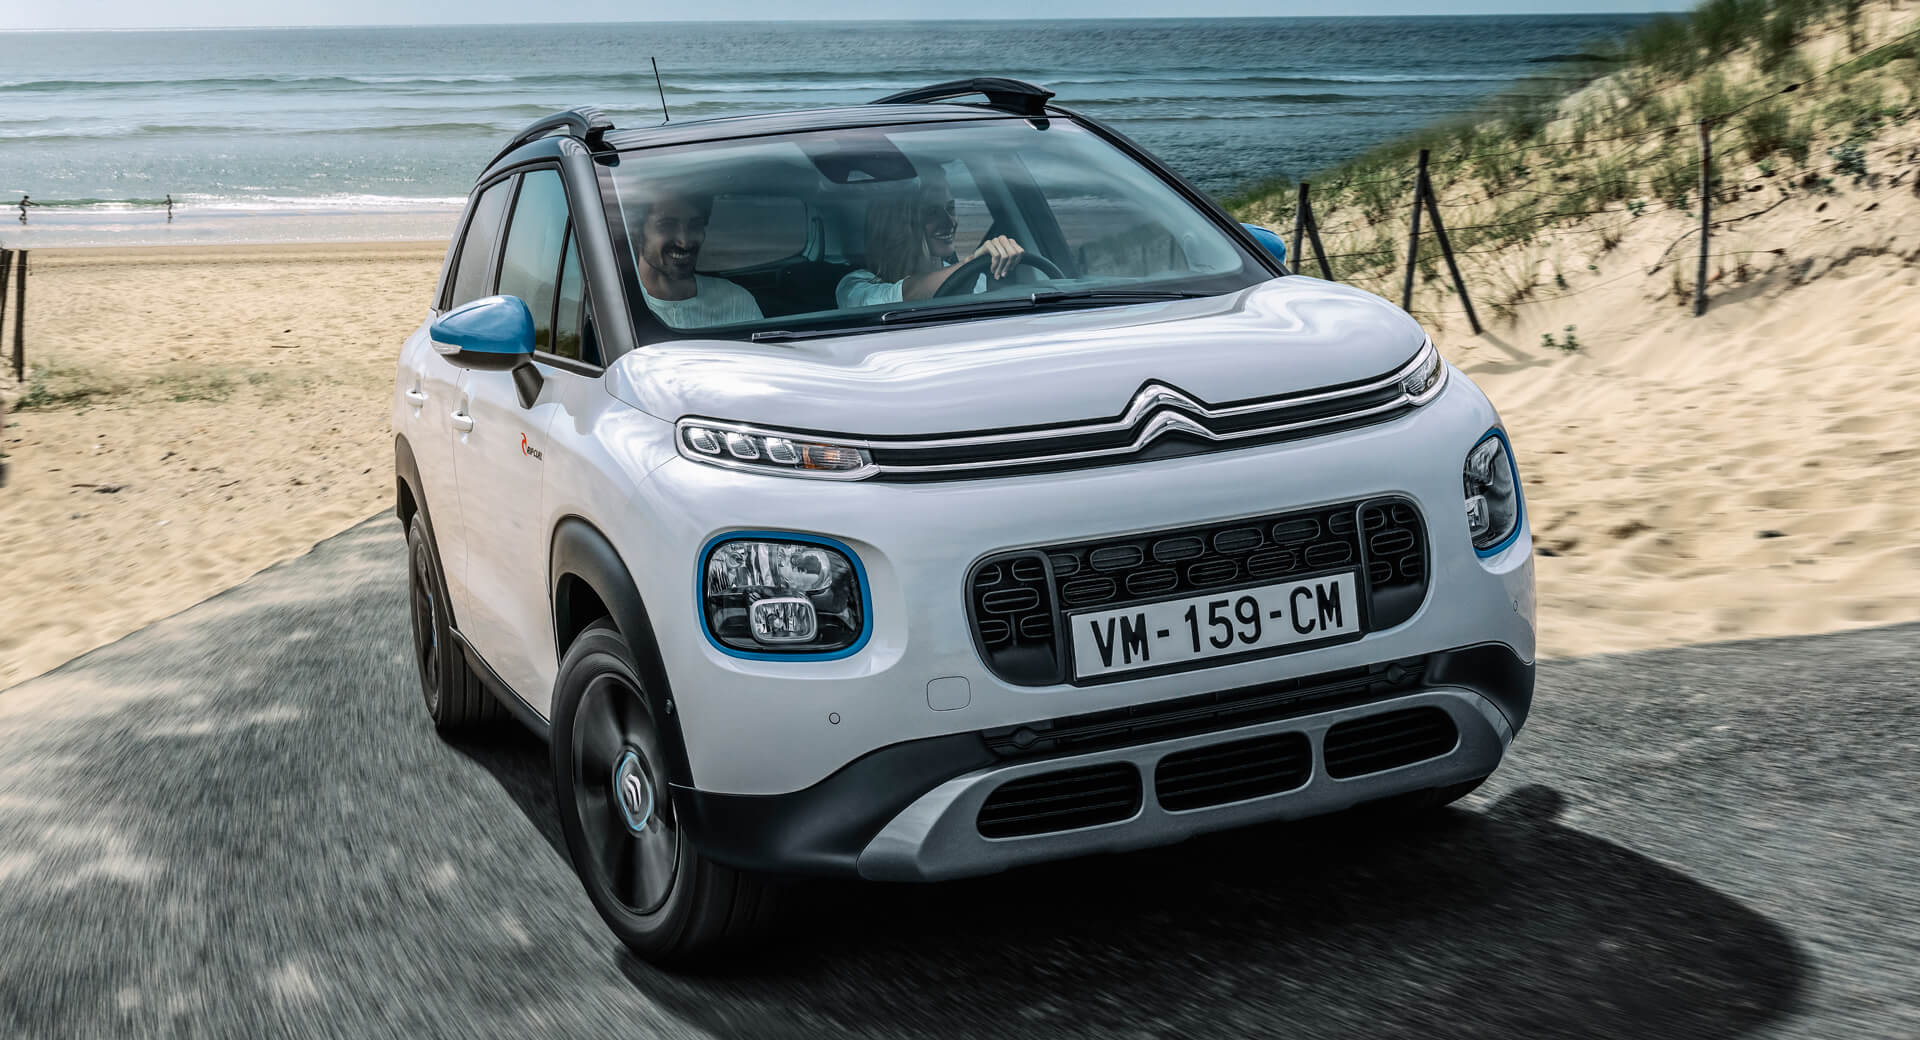 citroen c3 aircross joins the rip curl family with new special edition carscoops. Black Bedroom Furniture Sets. Home Design Ideas